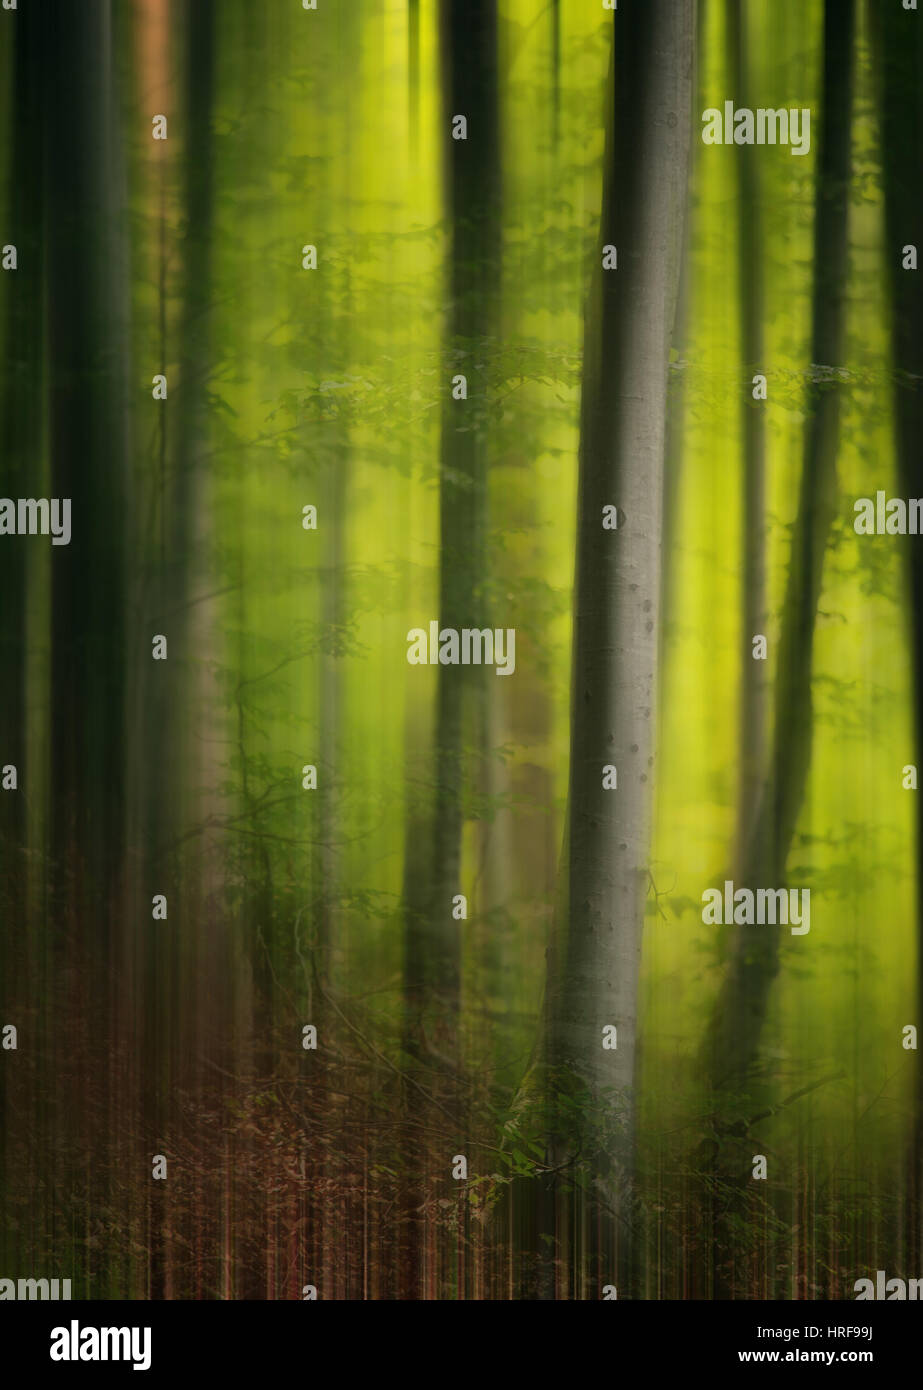 Abstract motion blurred vertical trees panoramic background green abstract motion blurred vertical trees panoramic background green prime colors voltagebd Images